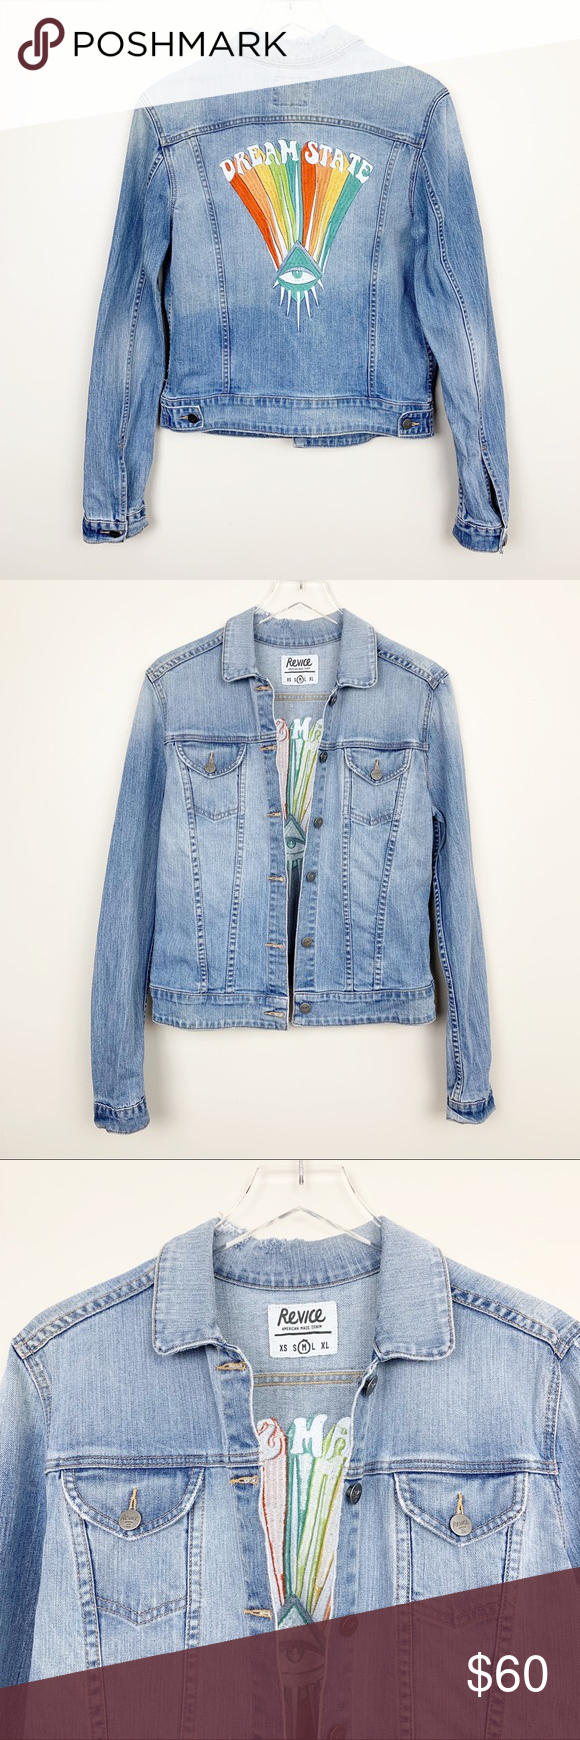 Revice Denim Dream State Embroidered Jean Jacket Clothes Design Distressed Denim Embroidered Jean Jacket [ 1740 x 580 Pixel ]